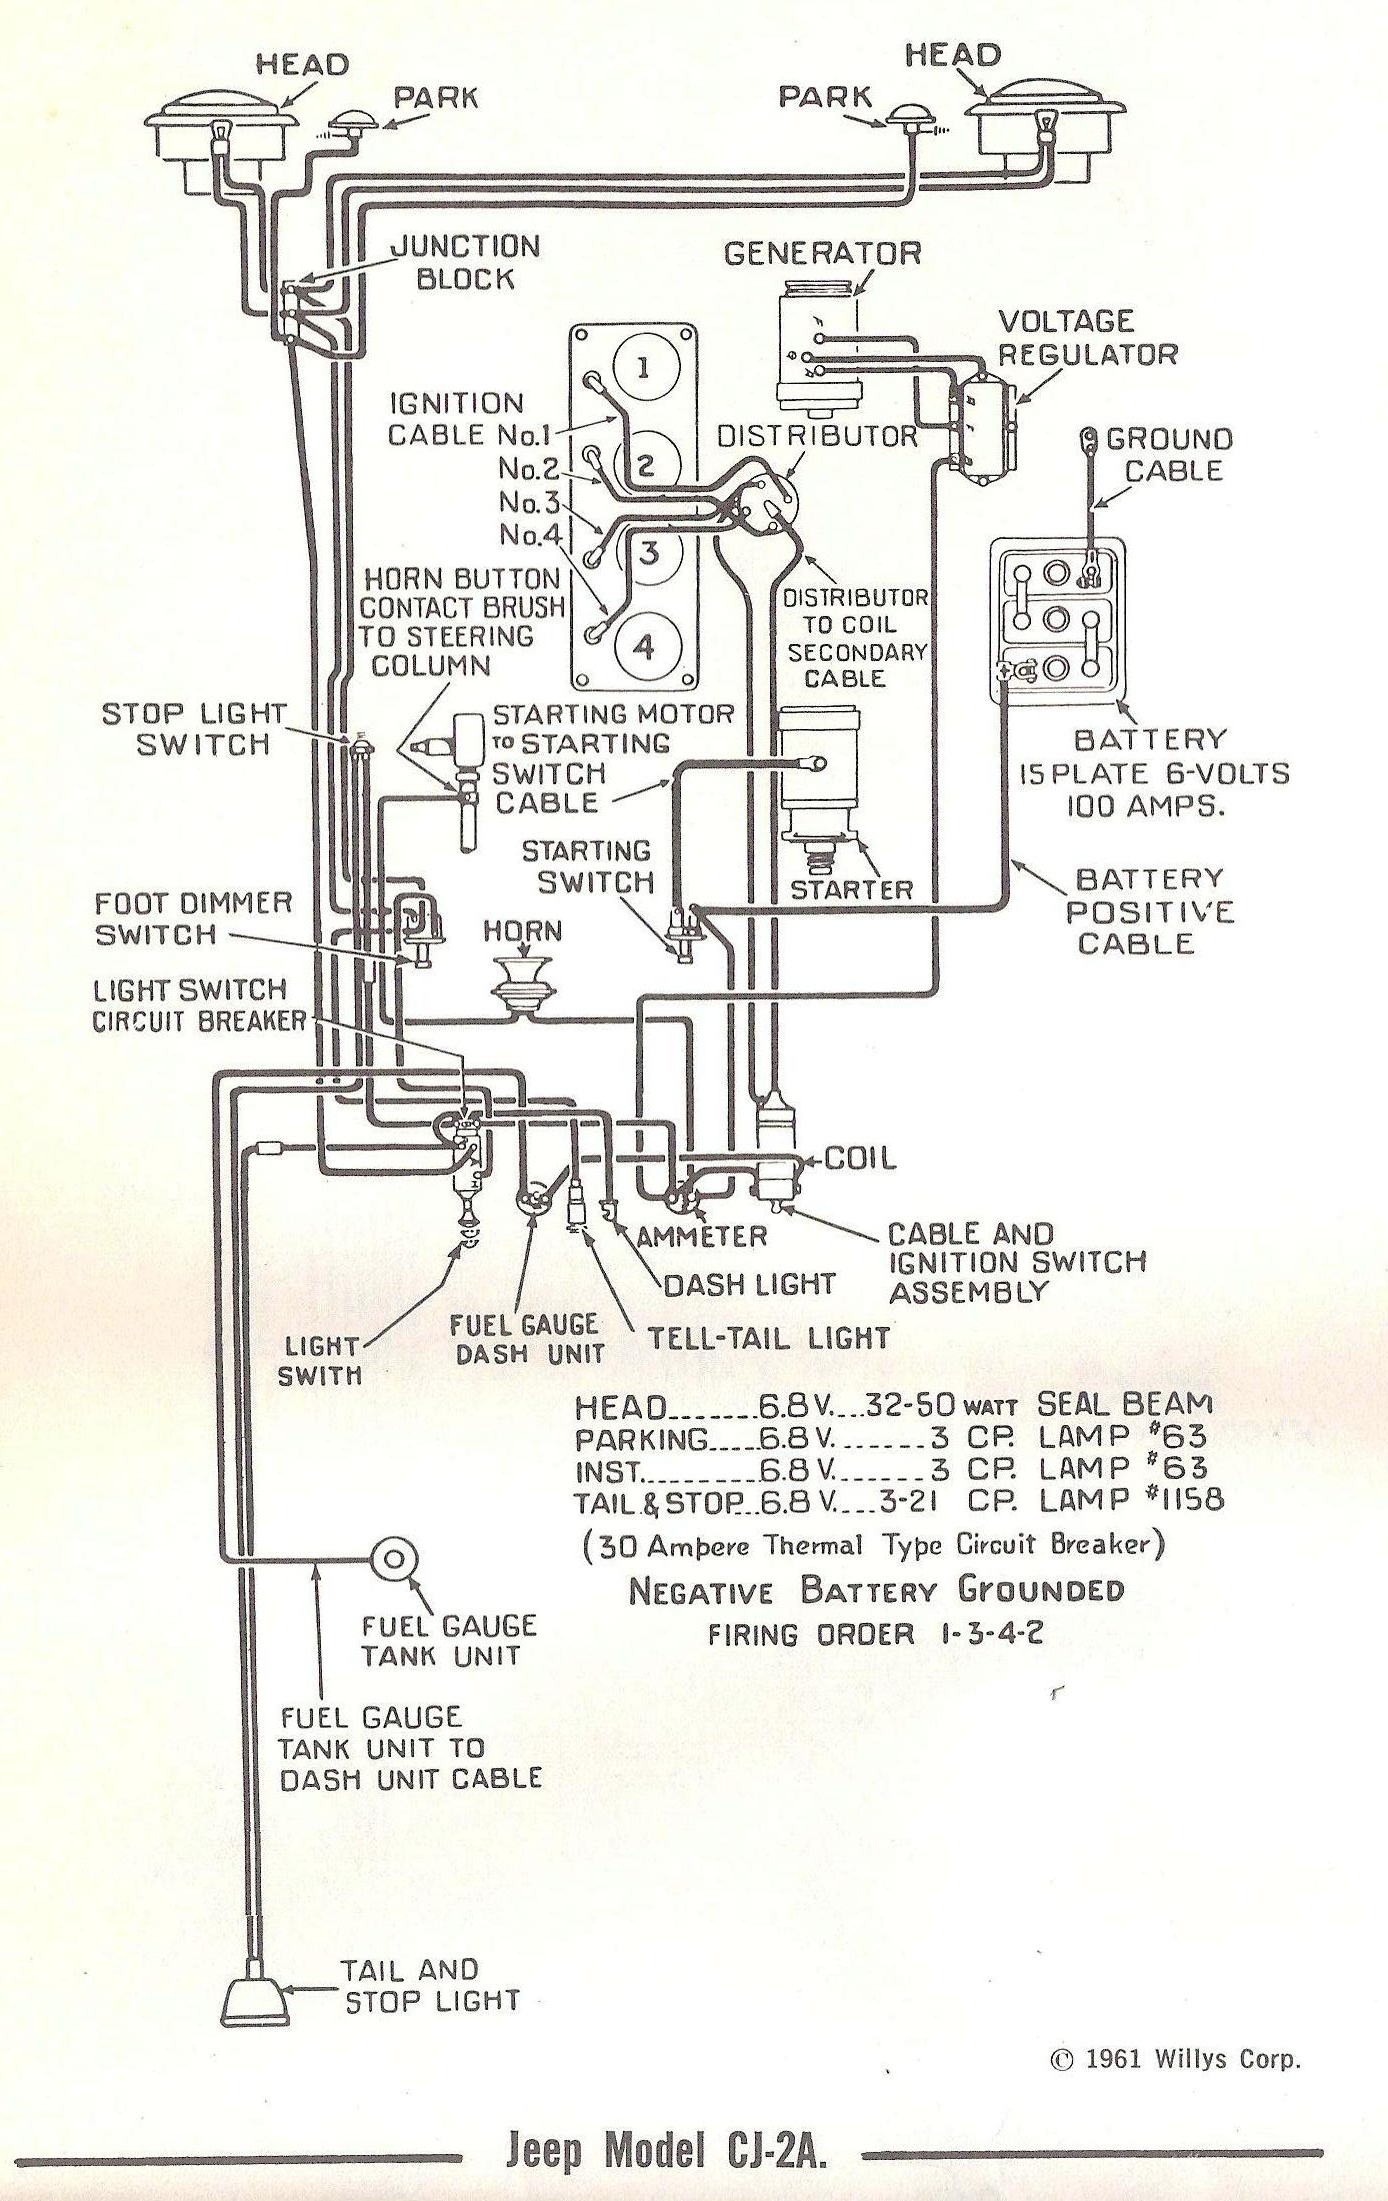 1950 Willys Overland Wiring Diagram Circuit Diagram Of 6 Channel Audio Mixer For Wiring Diagram Schematics